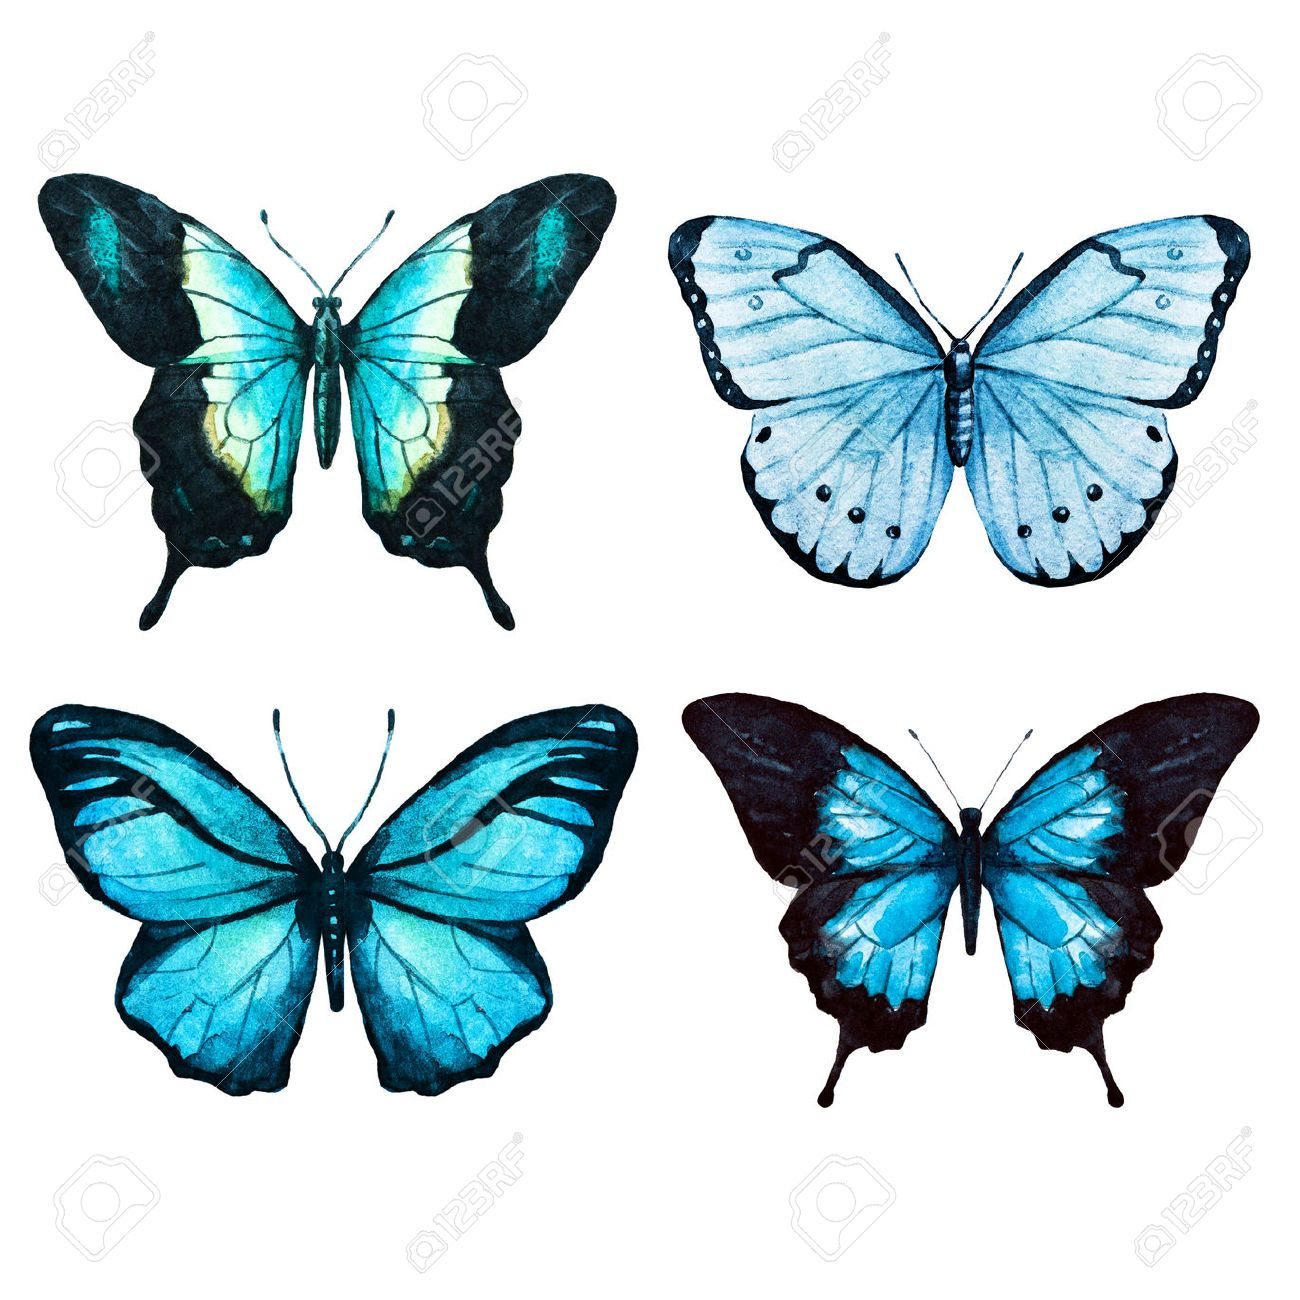 sch ne rasterbild mit sch nen aquarell schmetterlinge in 2019 tattoo butterfly schmetterling. Black Bedroom Furniture Sets. Home Design Ideas